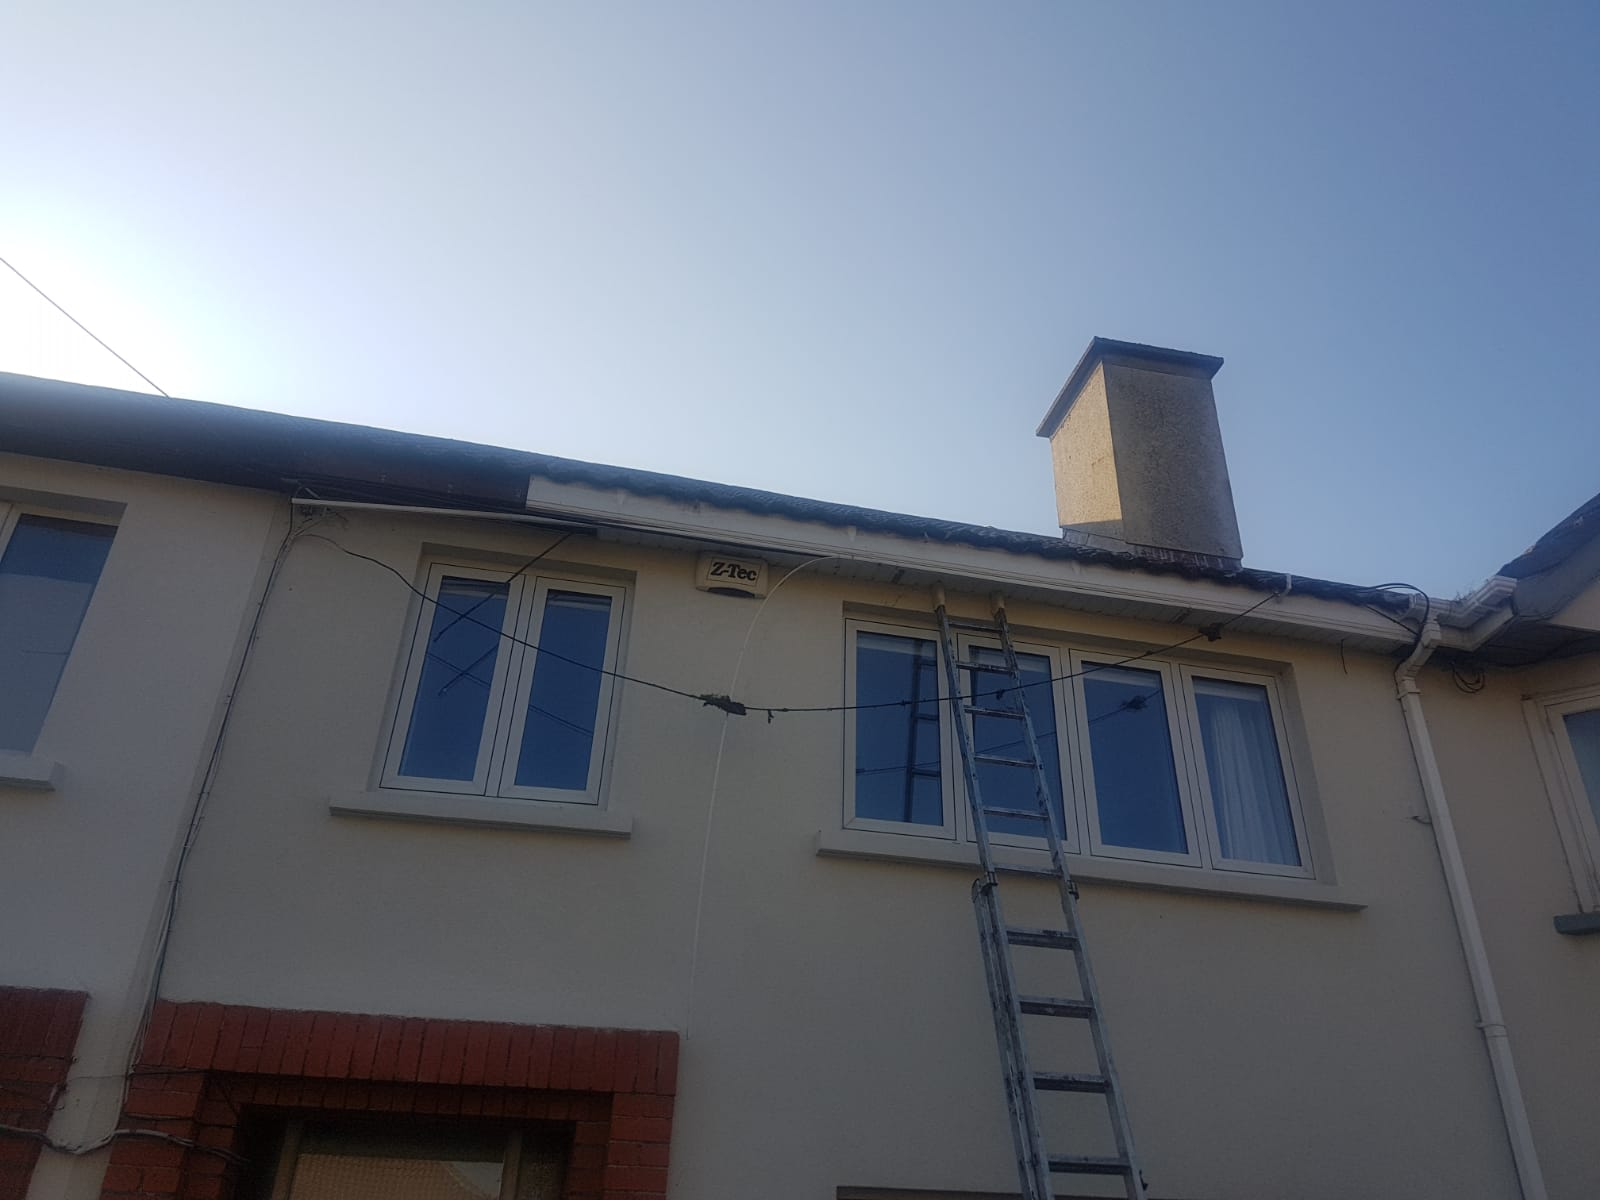 Gutter Repairs in Maynooth, Co. Kildare